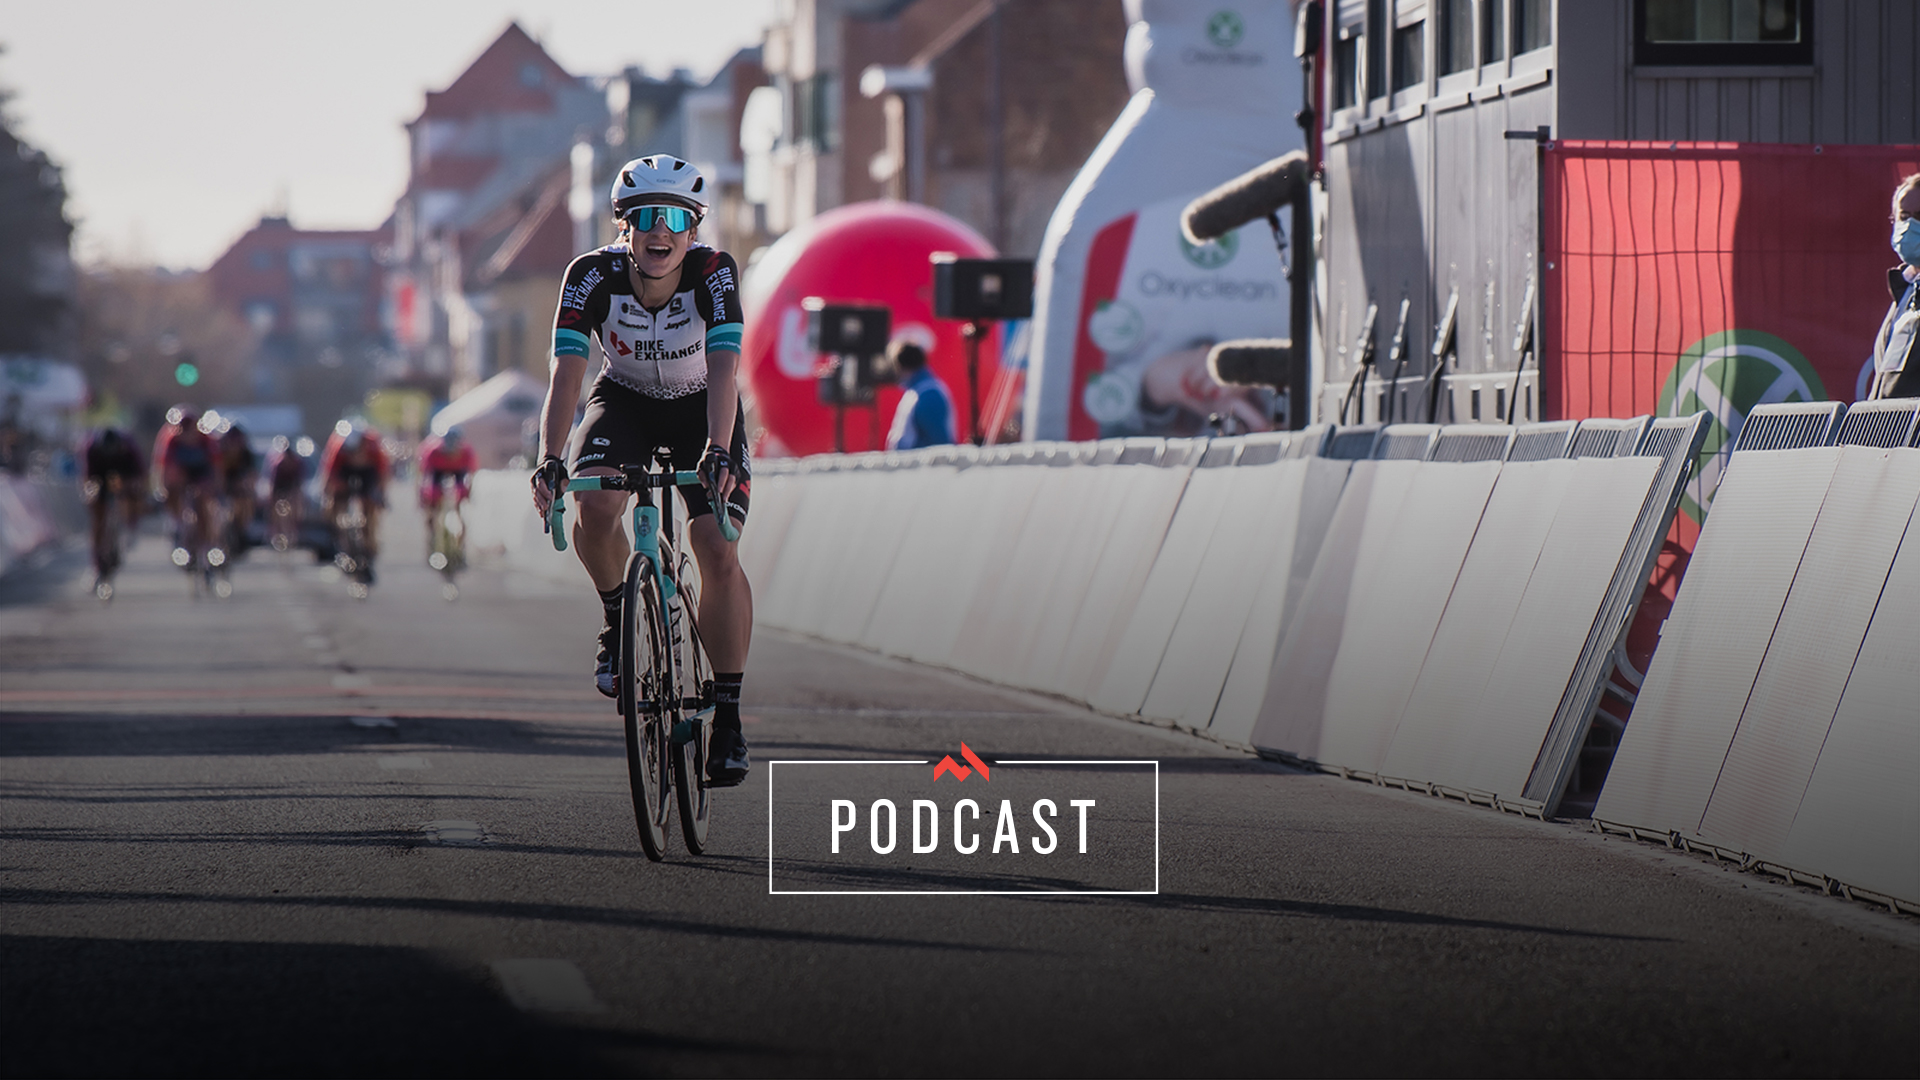 Freewheeling Podcast: What better way to win than solo